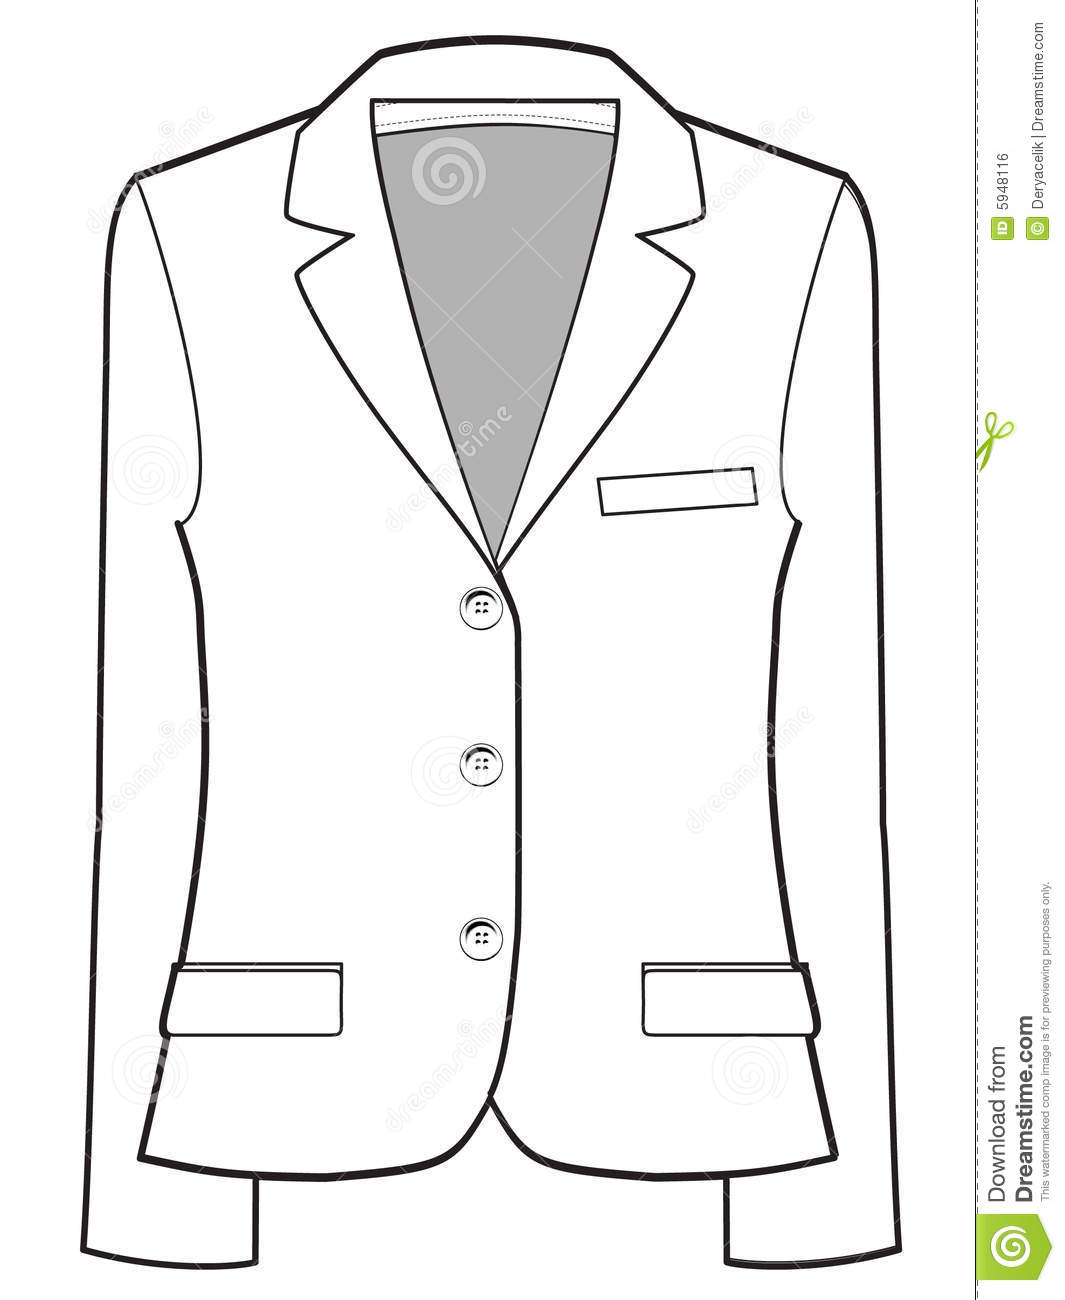 Jacket Vector Illustration Royalty Free Stock Image - Image: 5948116